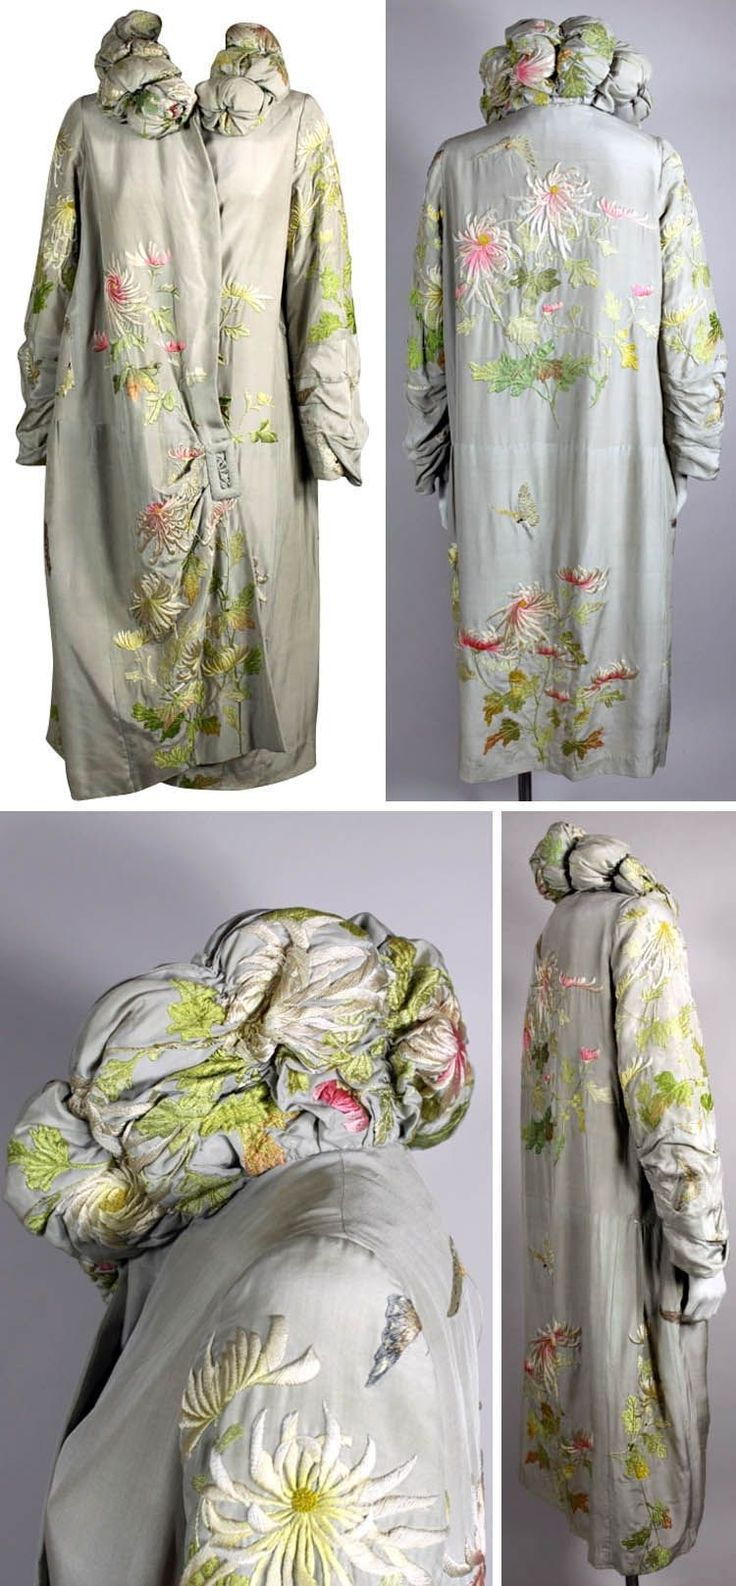 Opera coat ca. 1920s. Dove gray silk with Japanese-style hand embroidery. Padded and tufted standup collar, asymmetrical side closure with faux buckle. The Way We Wore/1st Dibs